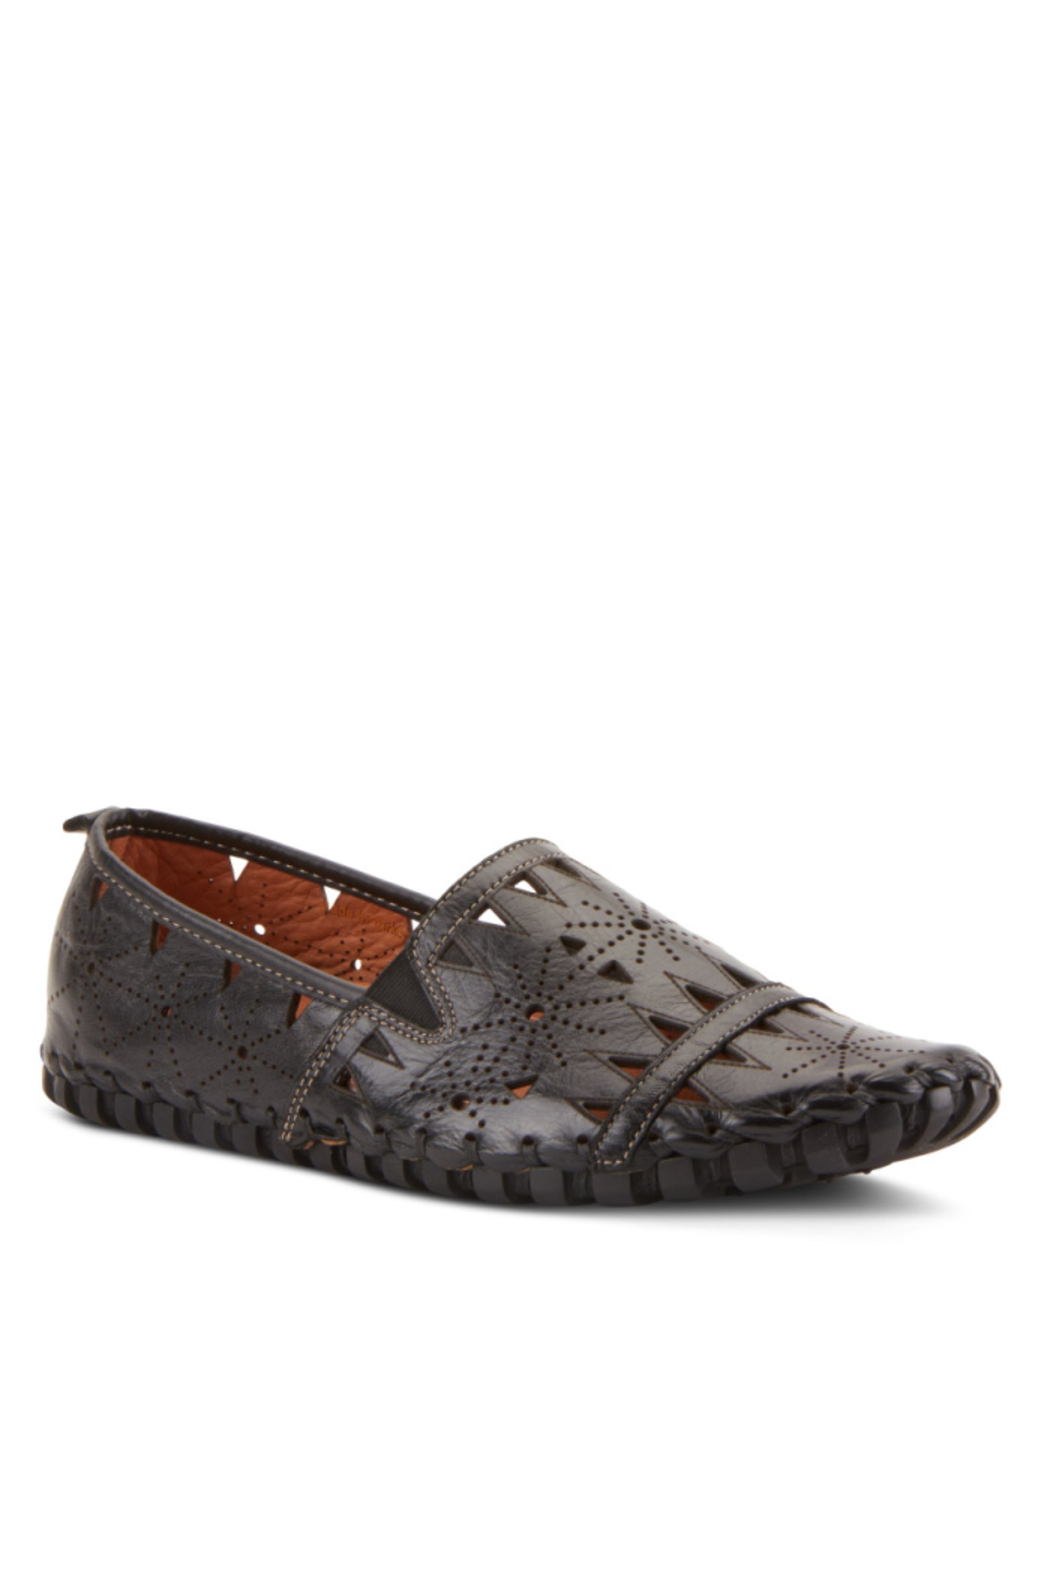 Spring Step  Leather Perforated Slip-On Shoes- Fusaro - Front Cropped Image